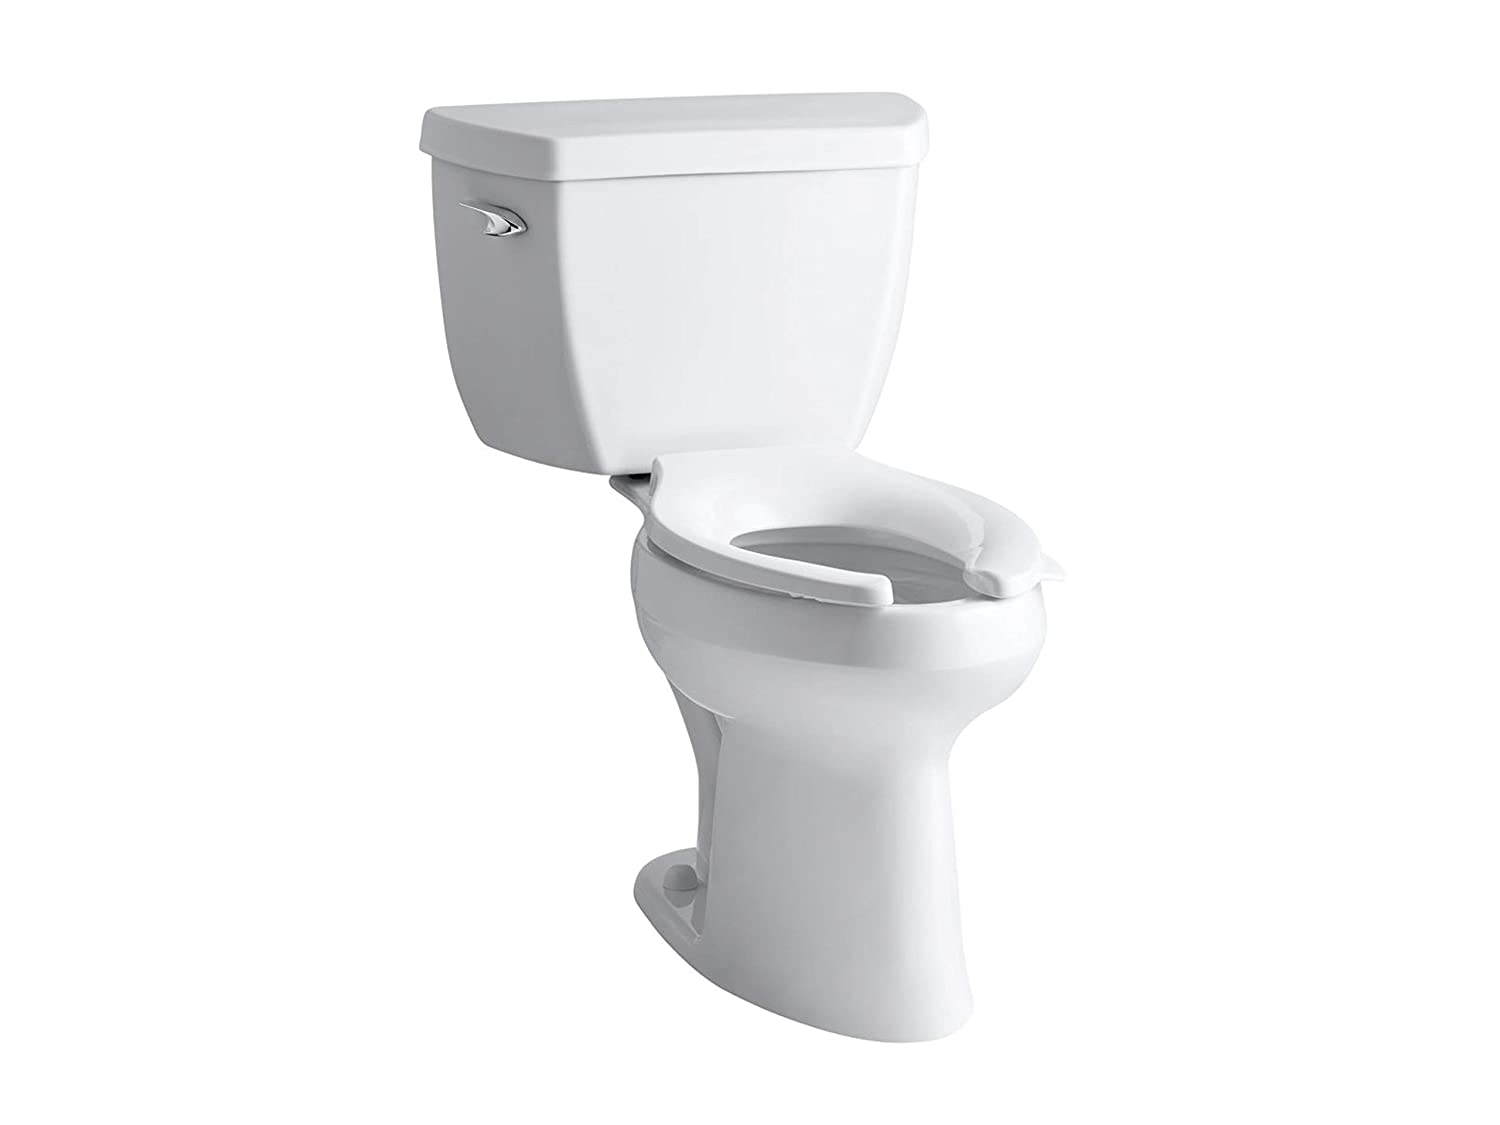 Kohler K-3493-0 Highline Classic Pressure Lite Comfort Height Elongated 1 6  gpf Toilet with Left-Hand Trip Lever, Less Seat, White